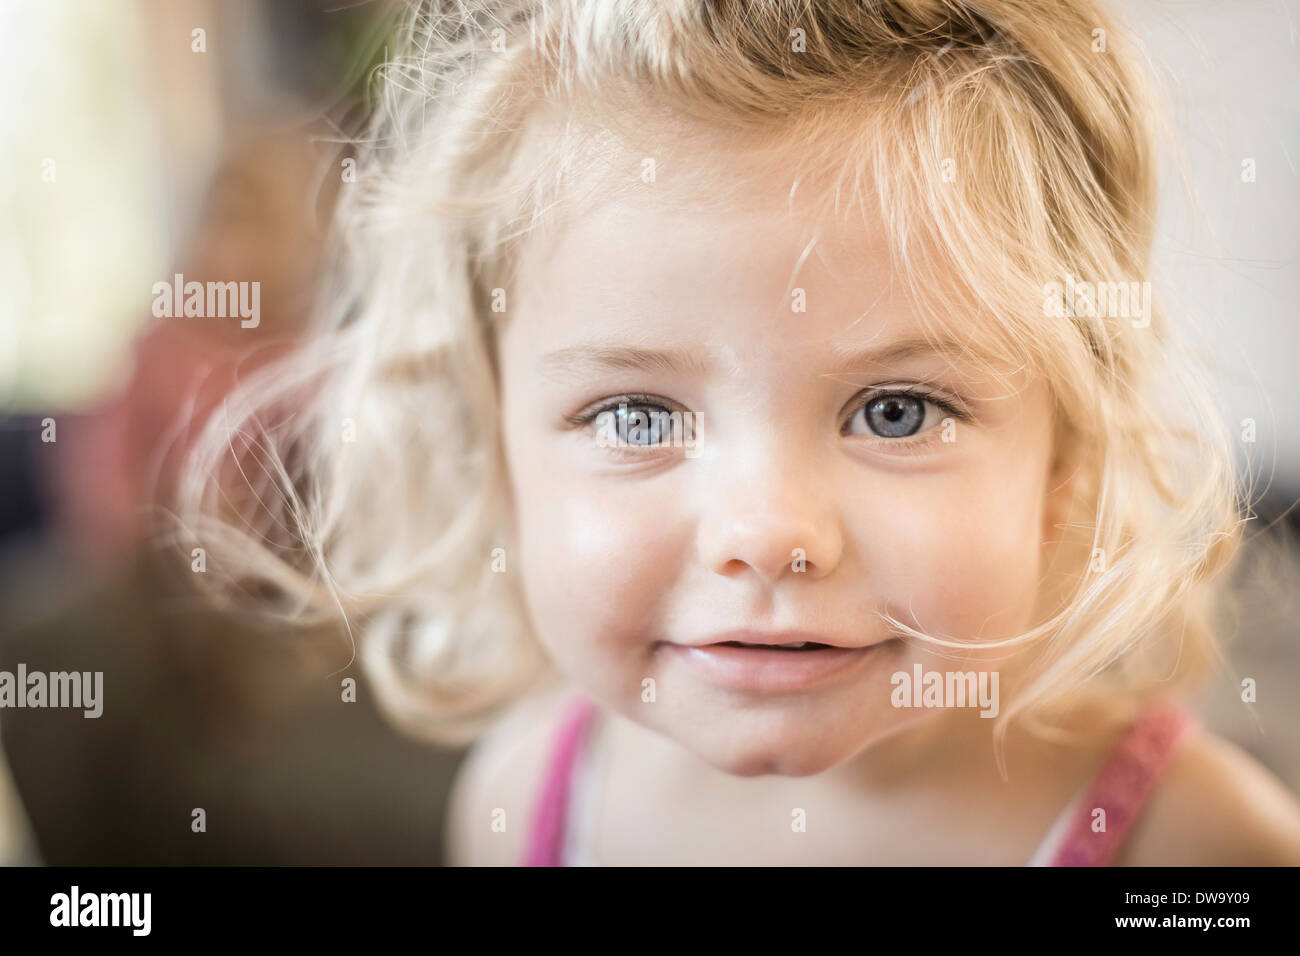 Close up of baby girl's face - Stock Image